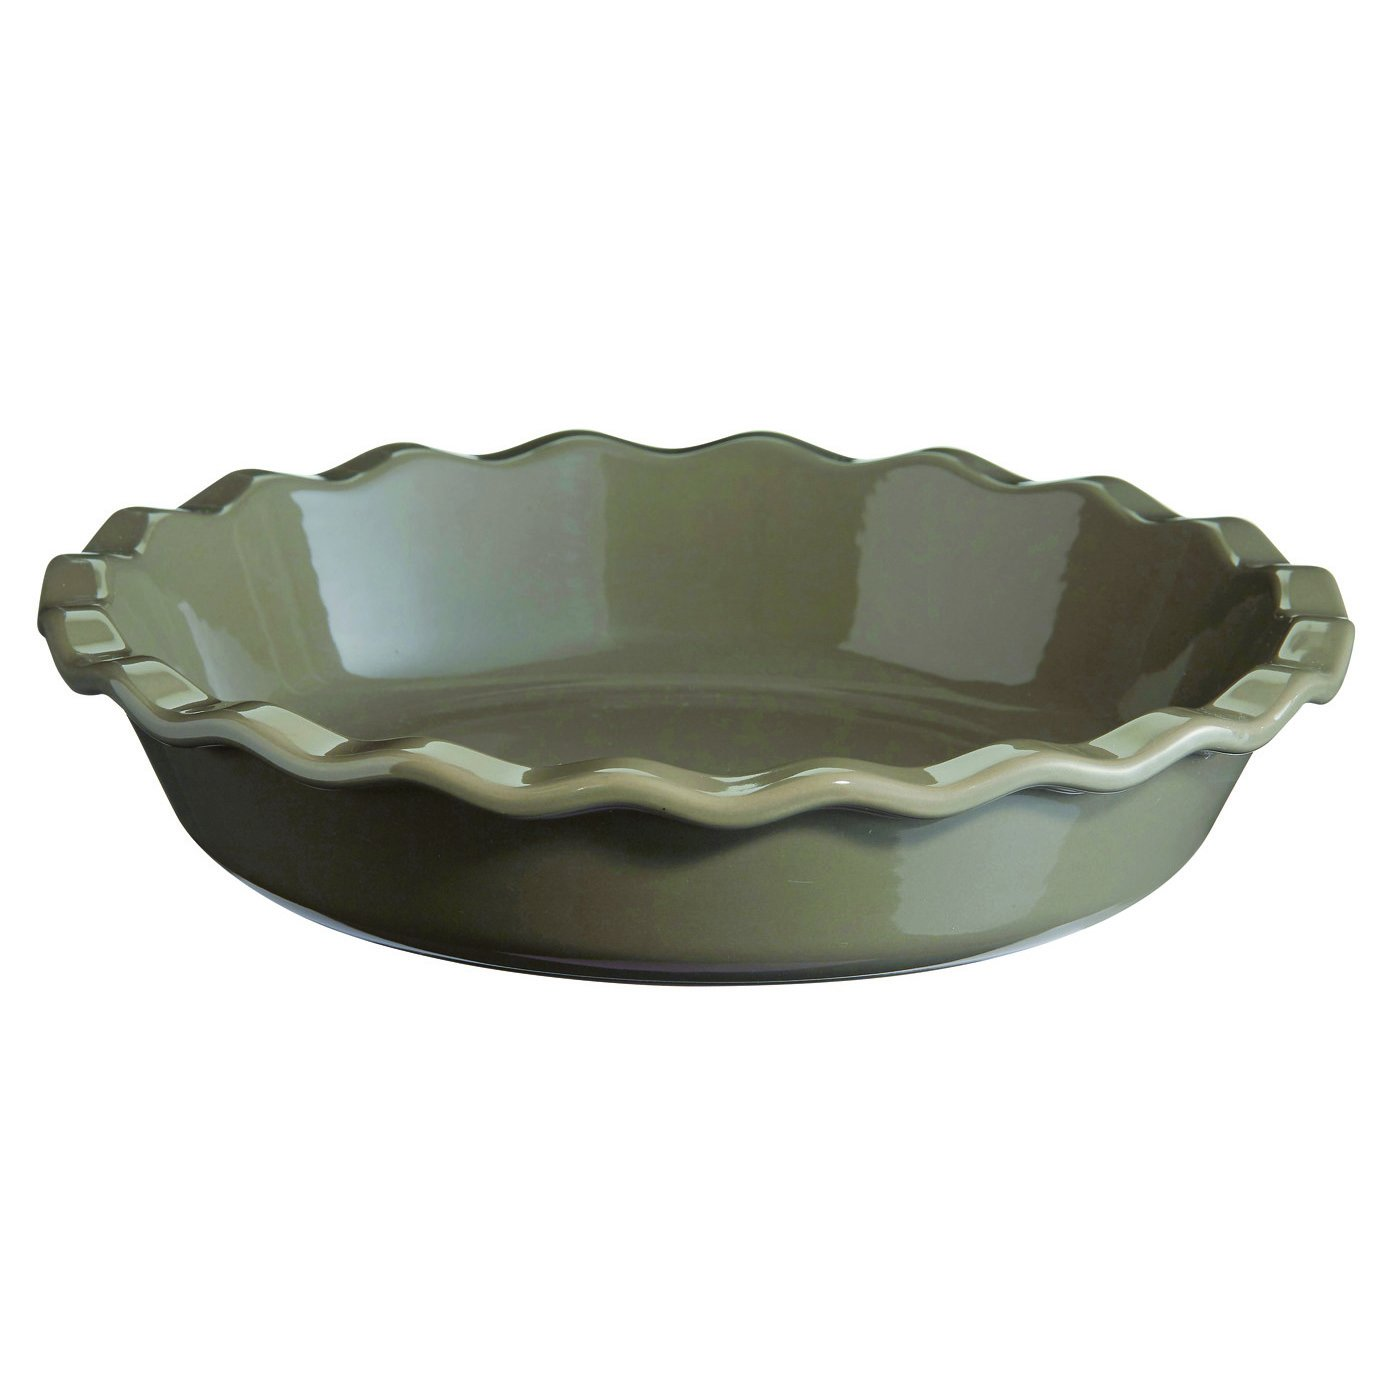 Emile Henry Flint, 9 inch Pie Dish, 9'' by Emile Henry